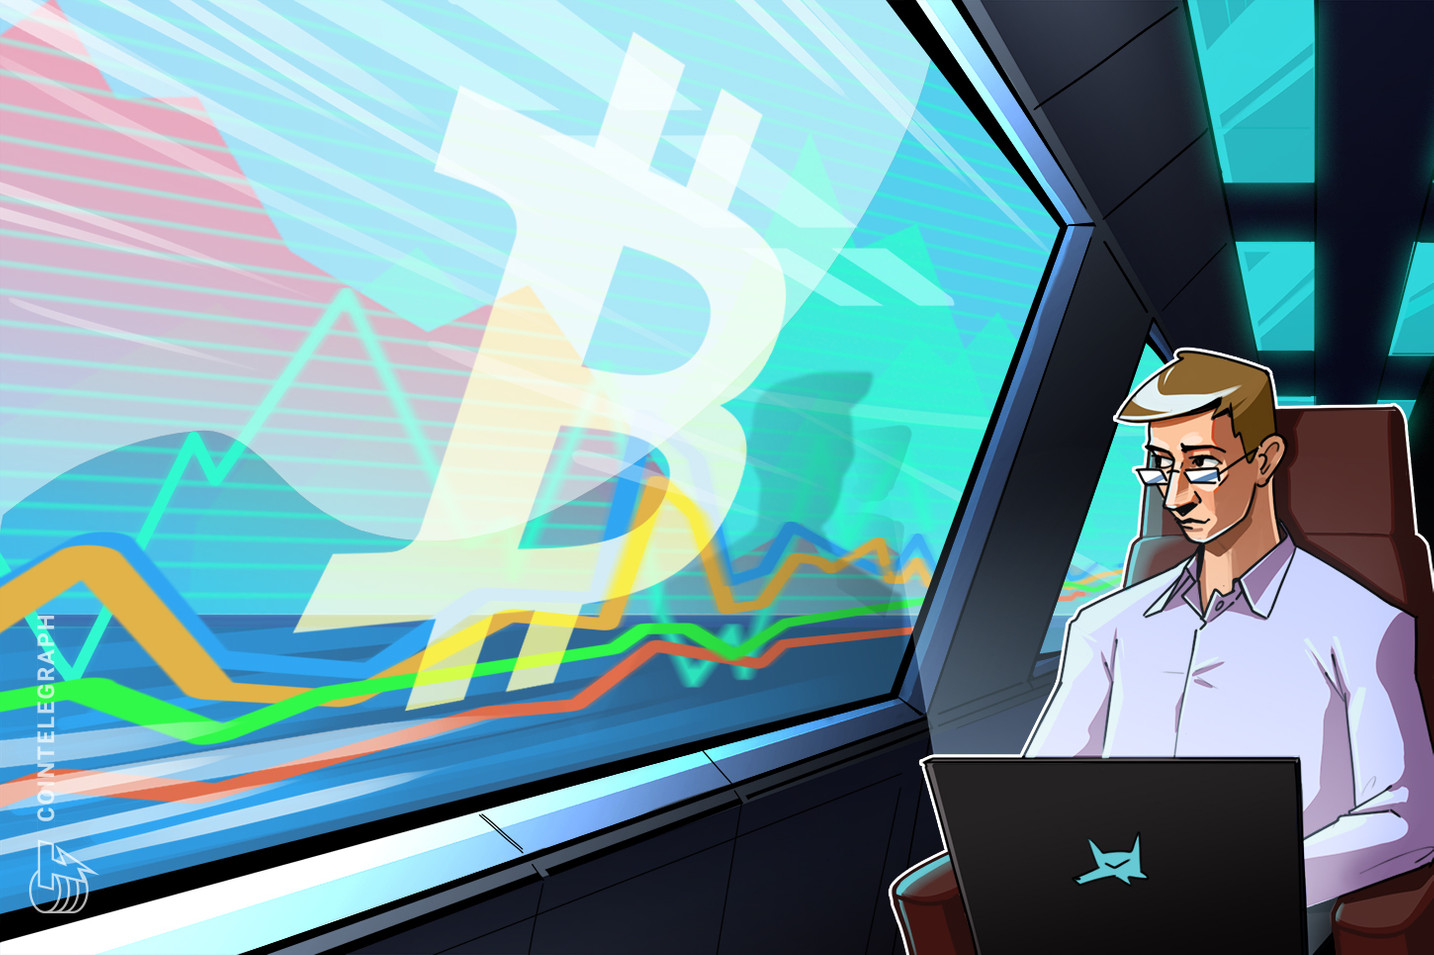 When all-time high? Bitcoin traders lose confidence as BTC price slumps